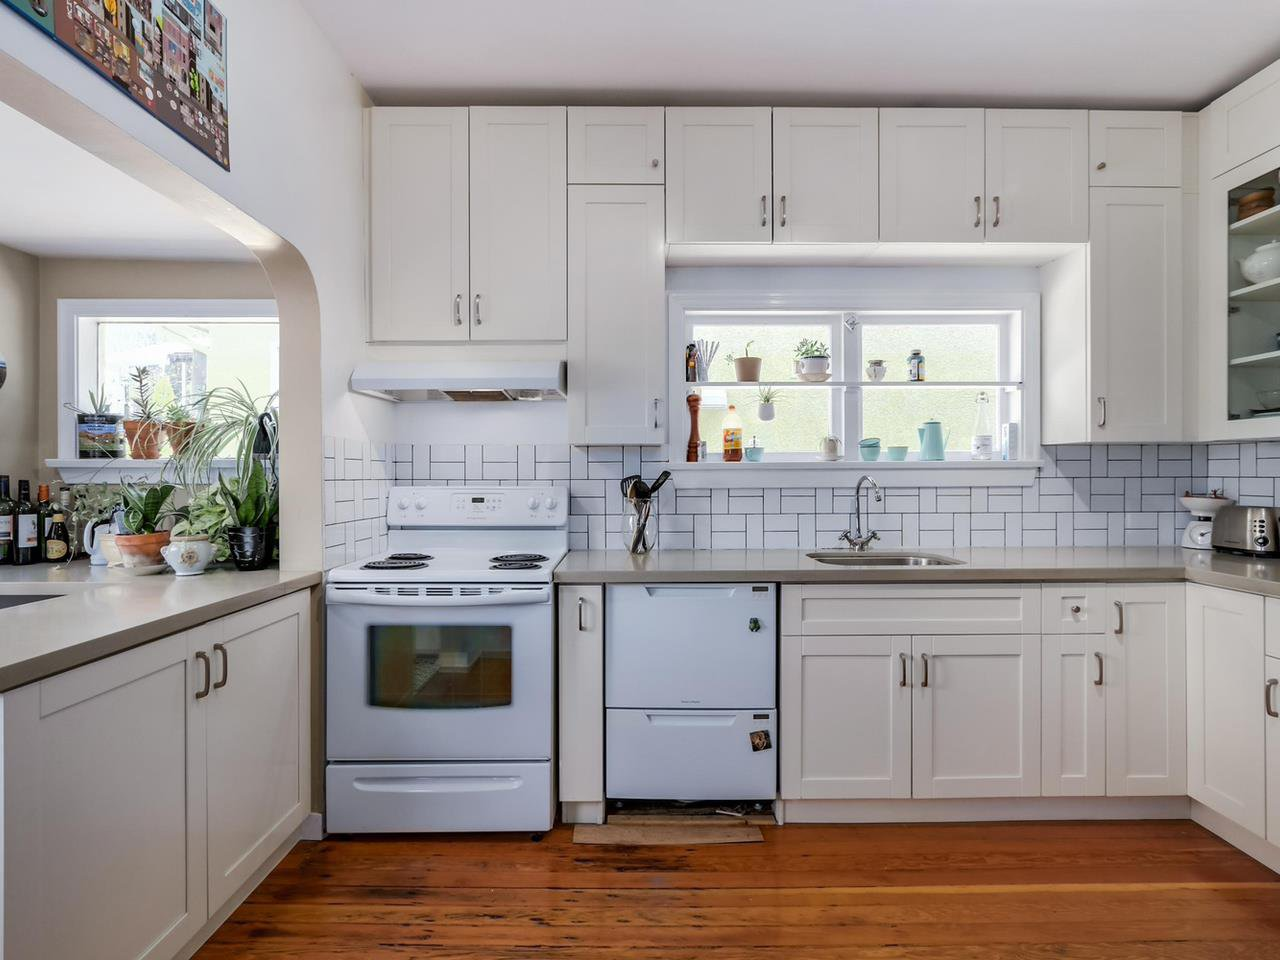 """Photo 7: Photos: 835 E 19TH Avenue in Vancouver: Fraser VE House for sale in """"CEDAR COTTAGE"""" (Vancouver East)  : MLS®# R2071745"""